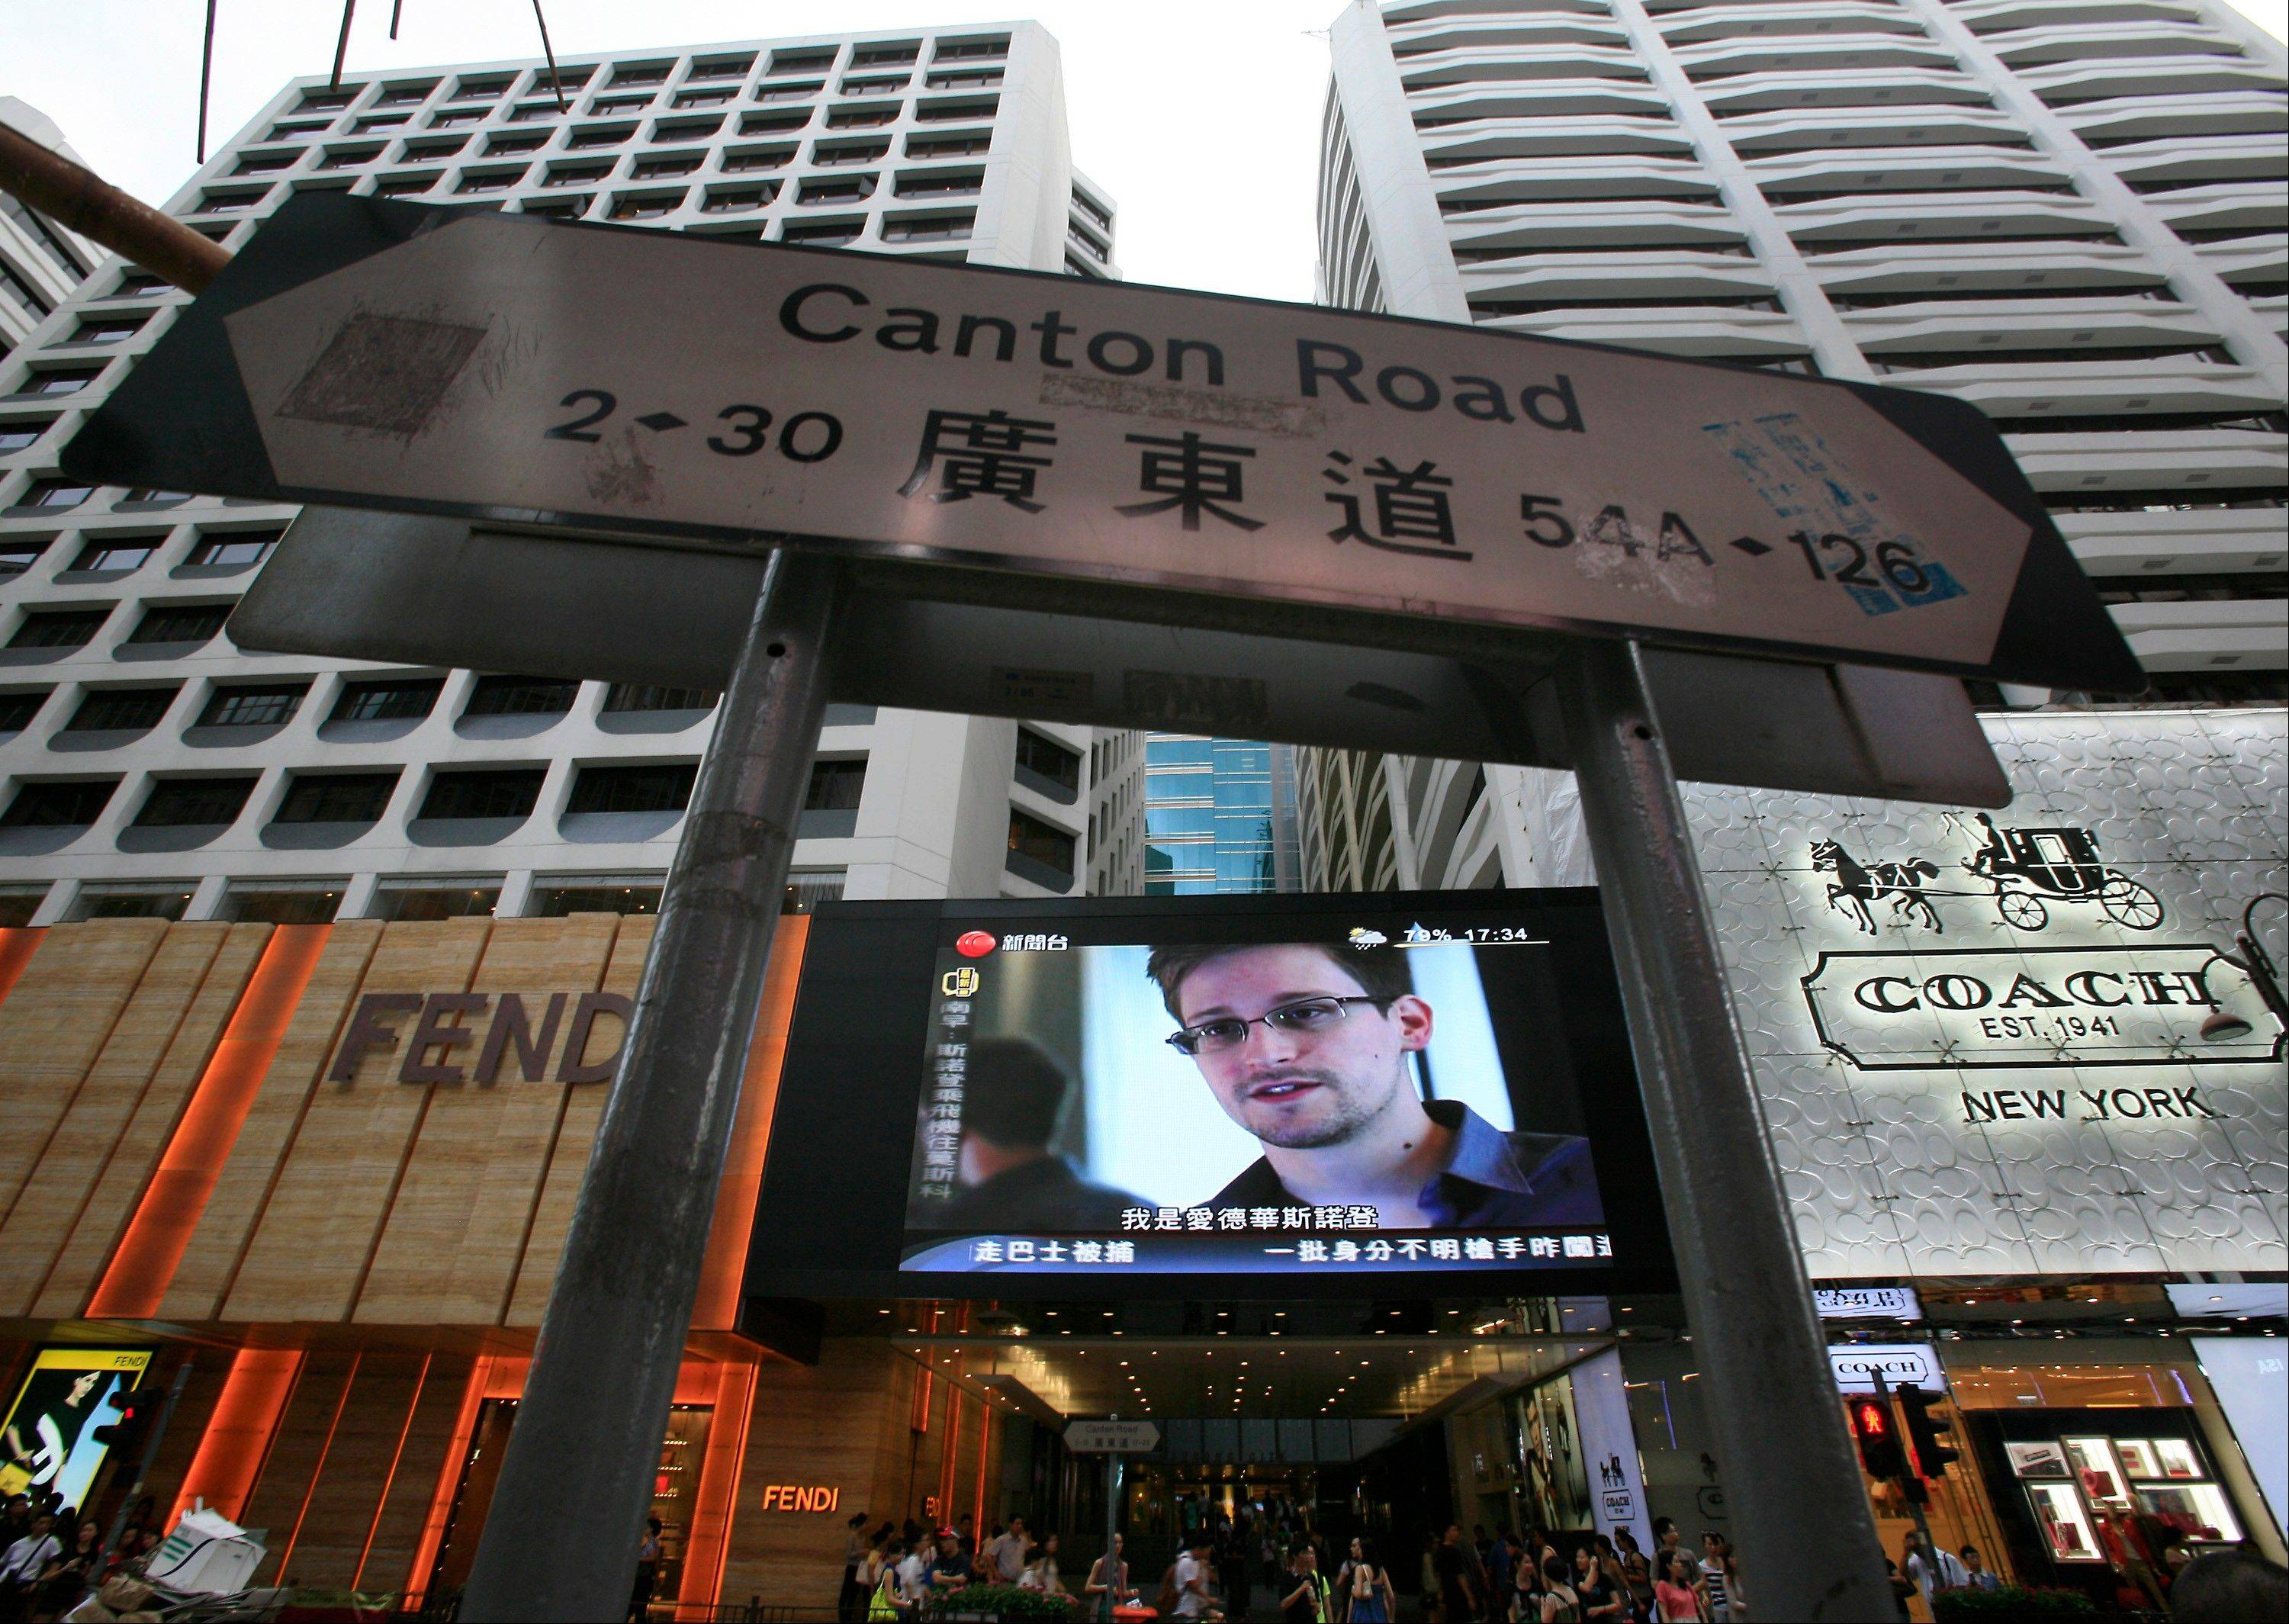 In this June 23 file photo, a television screen shows a news report of Edward Snowden, a former CIA employee who leaked top-secret documents about sweeping U.S. surveillance programs, at a shopping mall in Hong Kong.